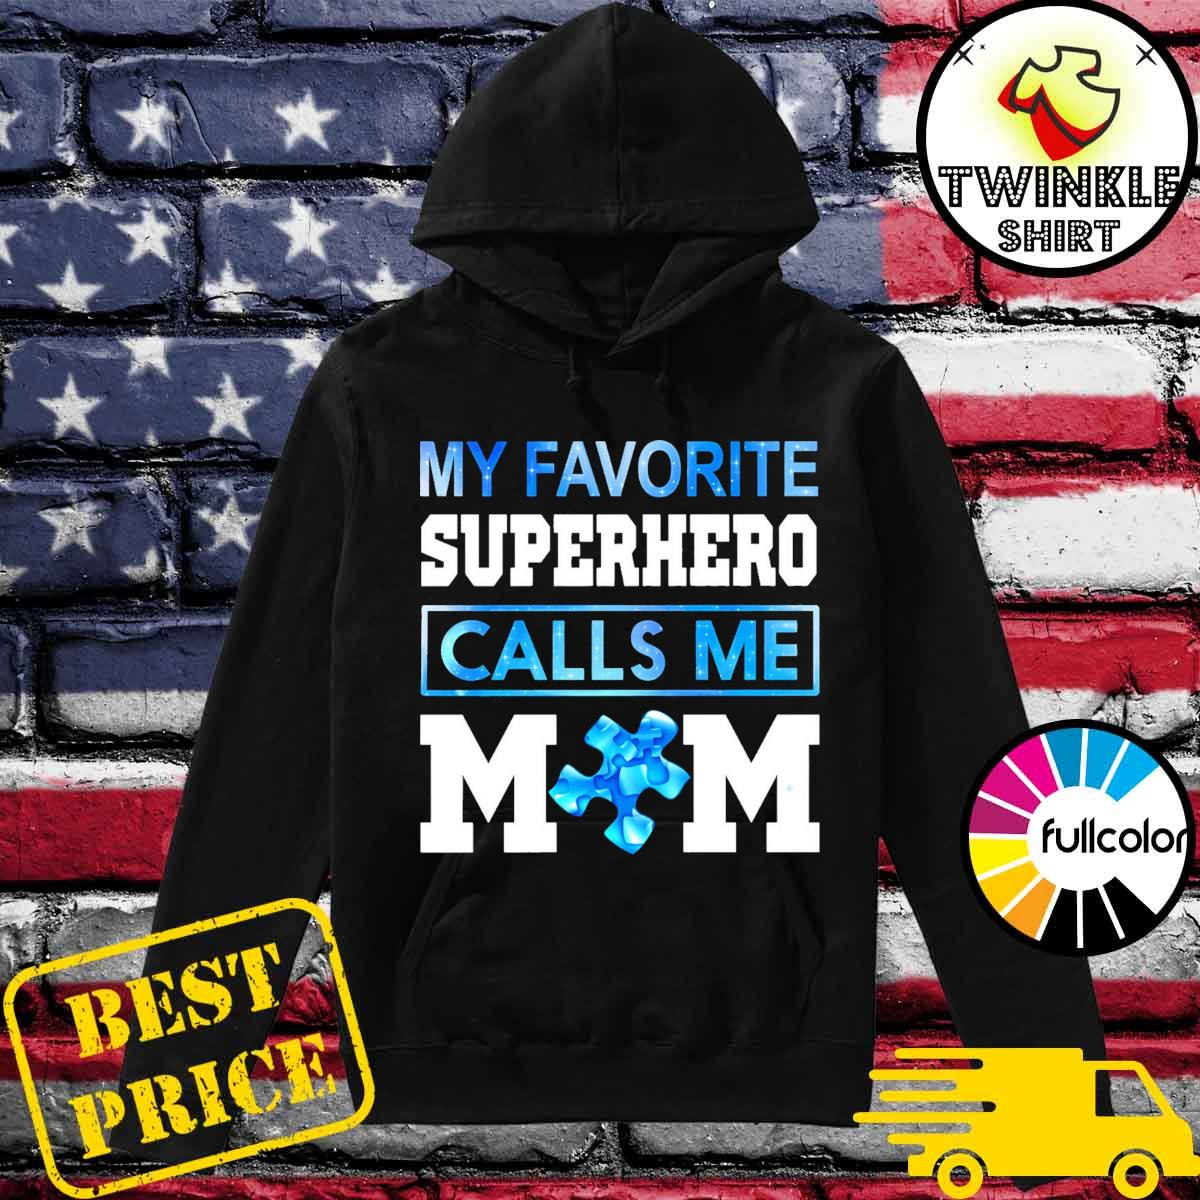 Official Autism Awareness My Favorite Superhero Calls Me Mom - Happy Mother's Day 2021 Shirt Hoodie